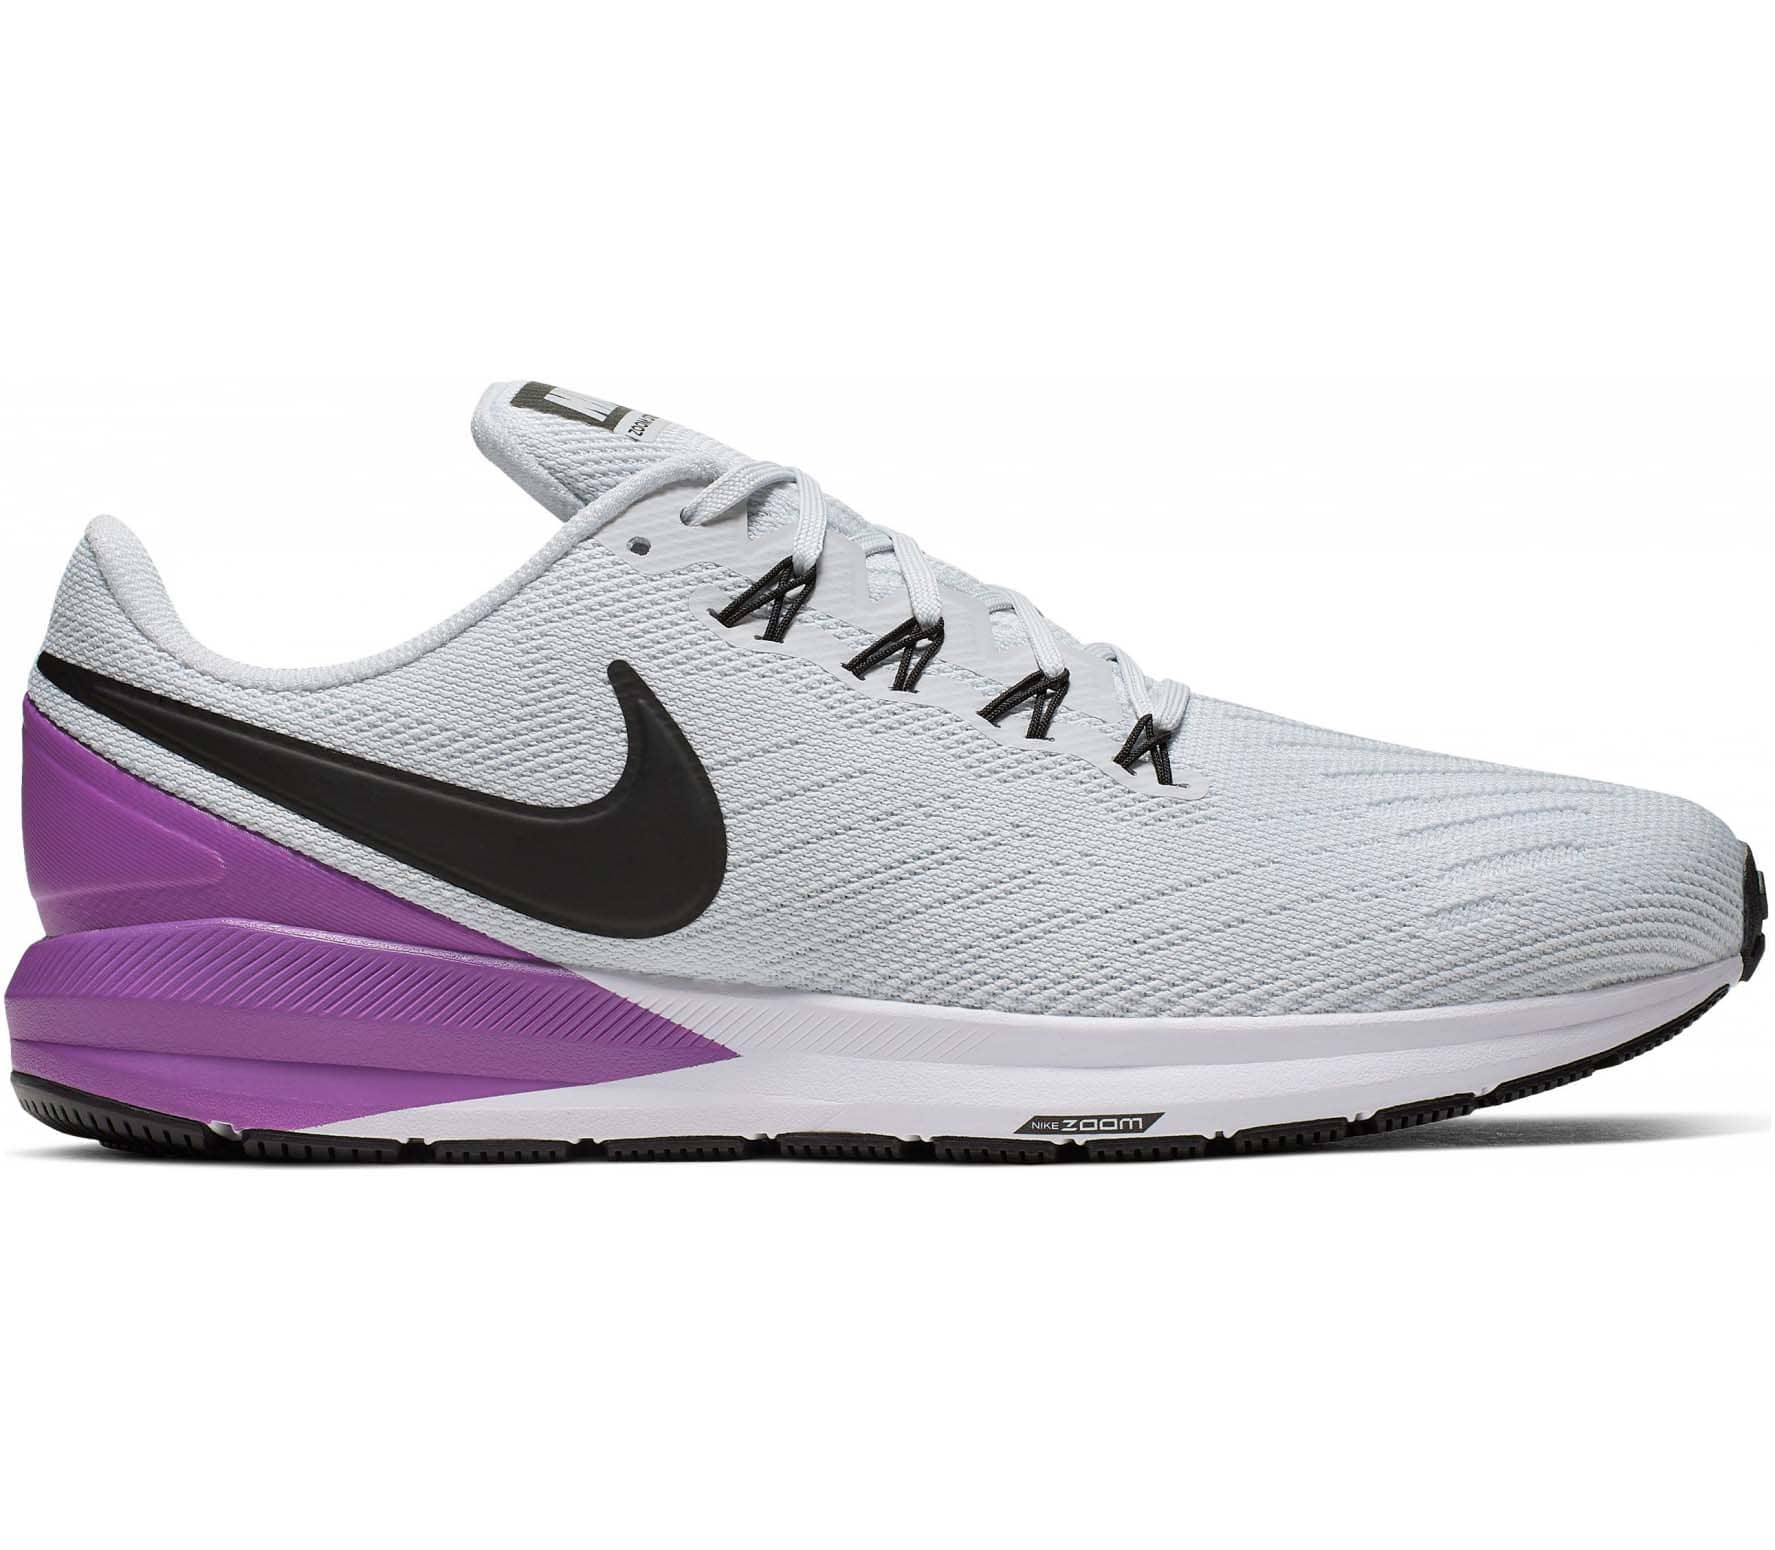 nouvelle arrivee 53957 c16ac Nike Air Zoom Structure 22 Men Running Shoes white